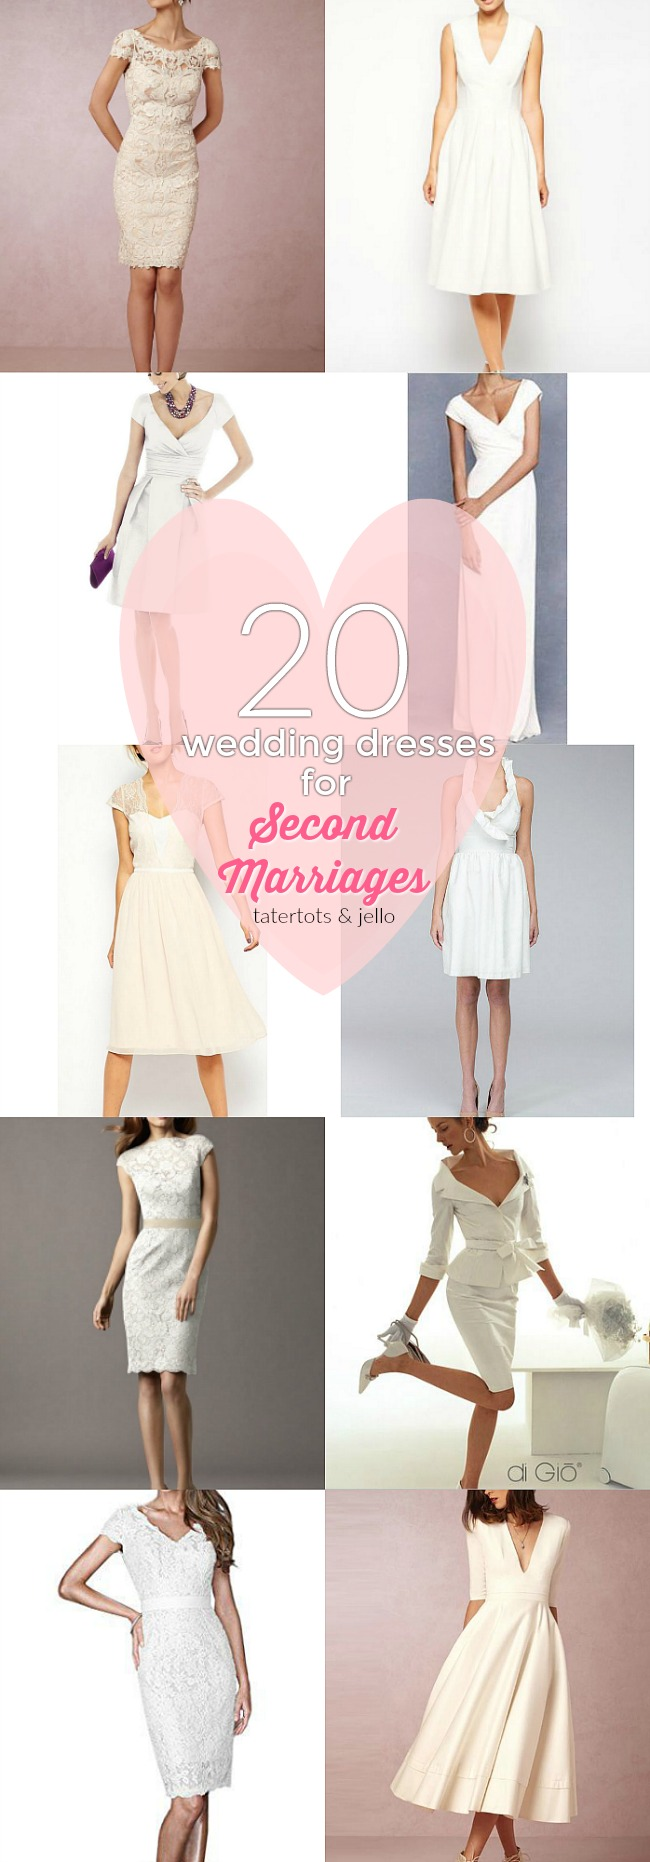 20 wedding dresses for second marriages and courthouse weddings tatertots and jello